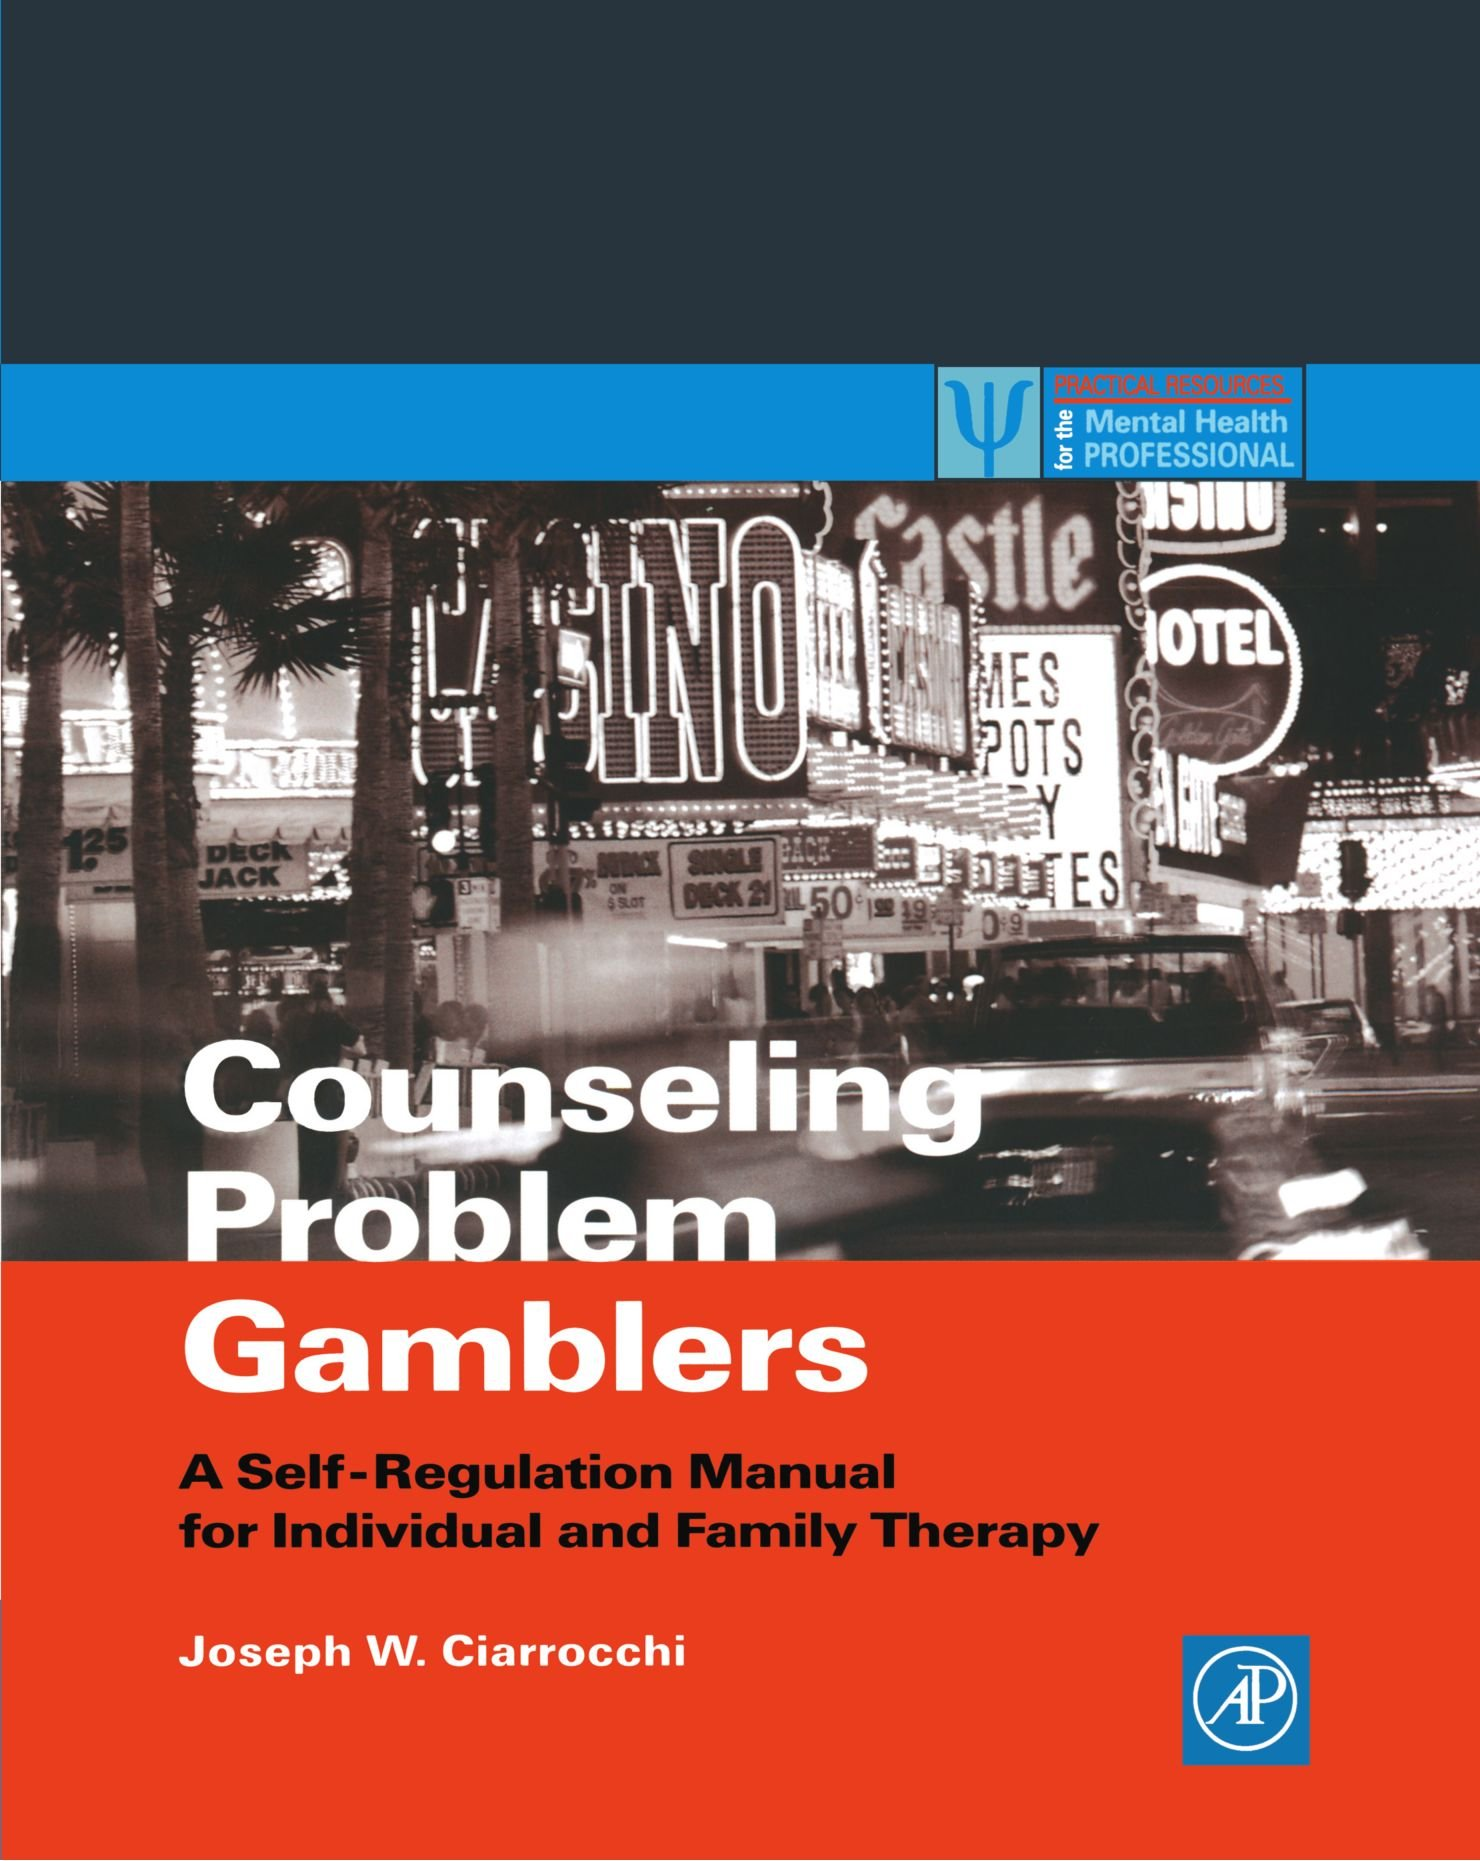 Counseling Problem Gamblers: A Self-Regulation Manual for Individual and Family Therapy (Practical Resources for the Mental Health Professional) by Academic Press